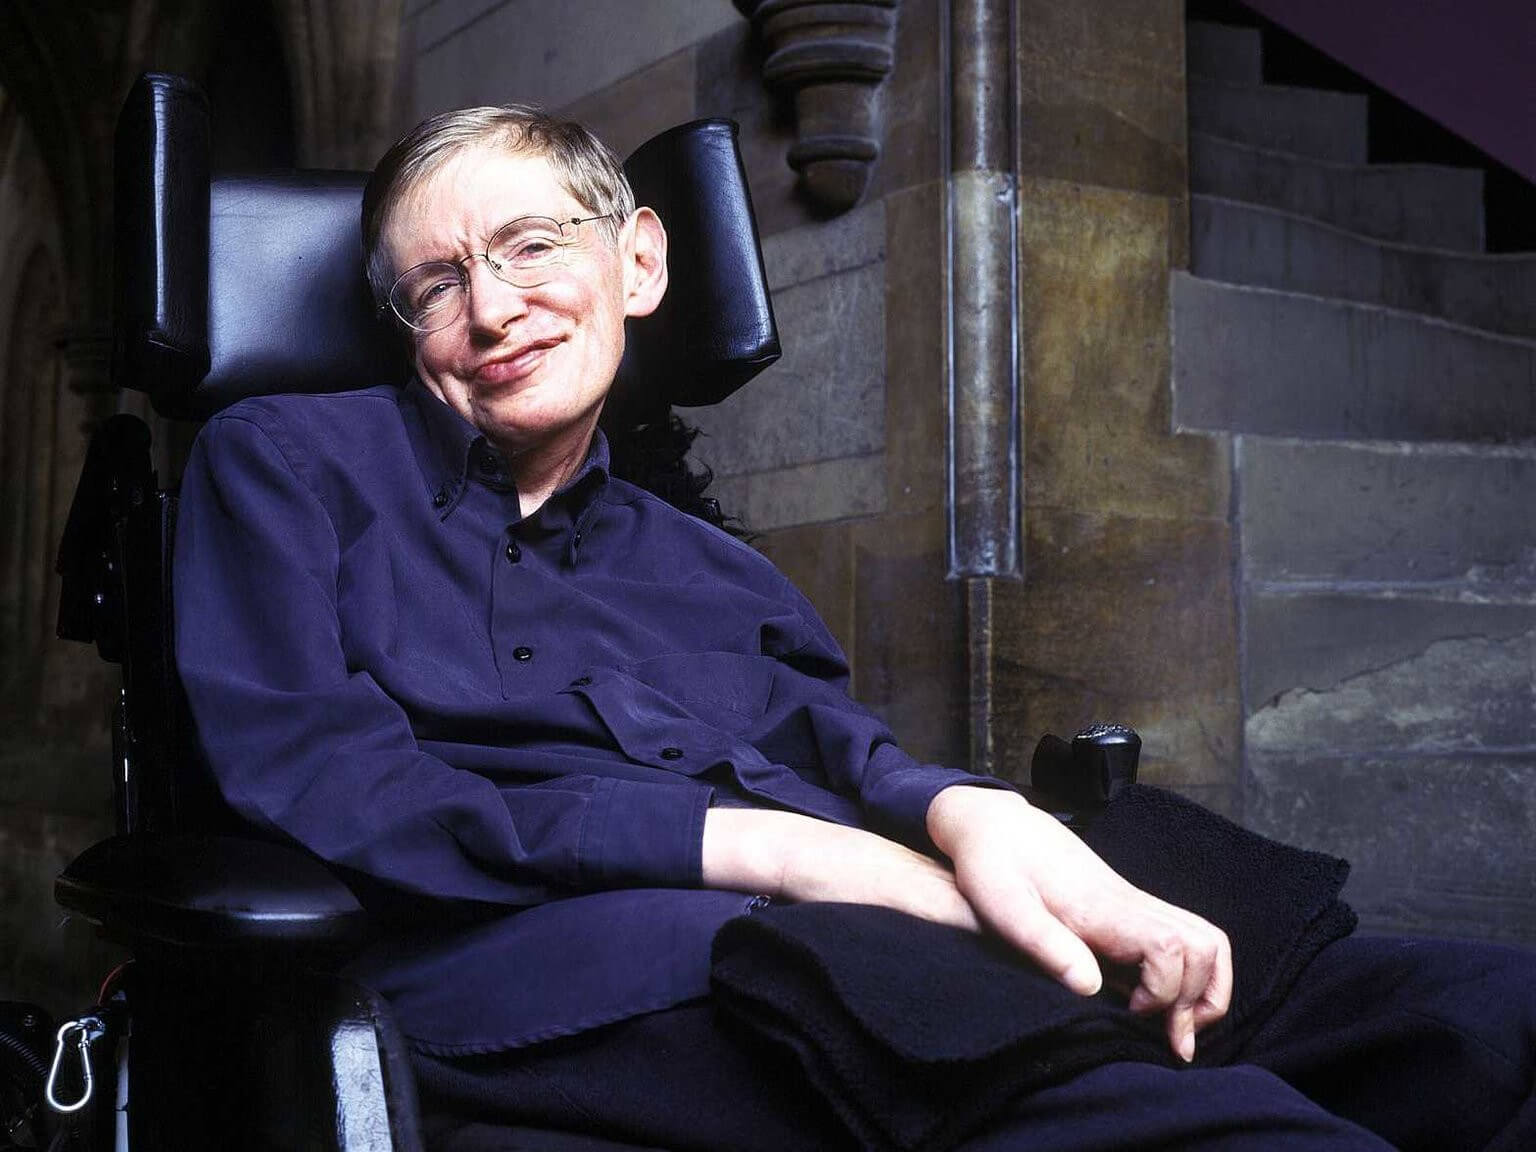 World Mourns Stephen Hawking After Renowned Physicist Dies at 76